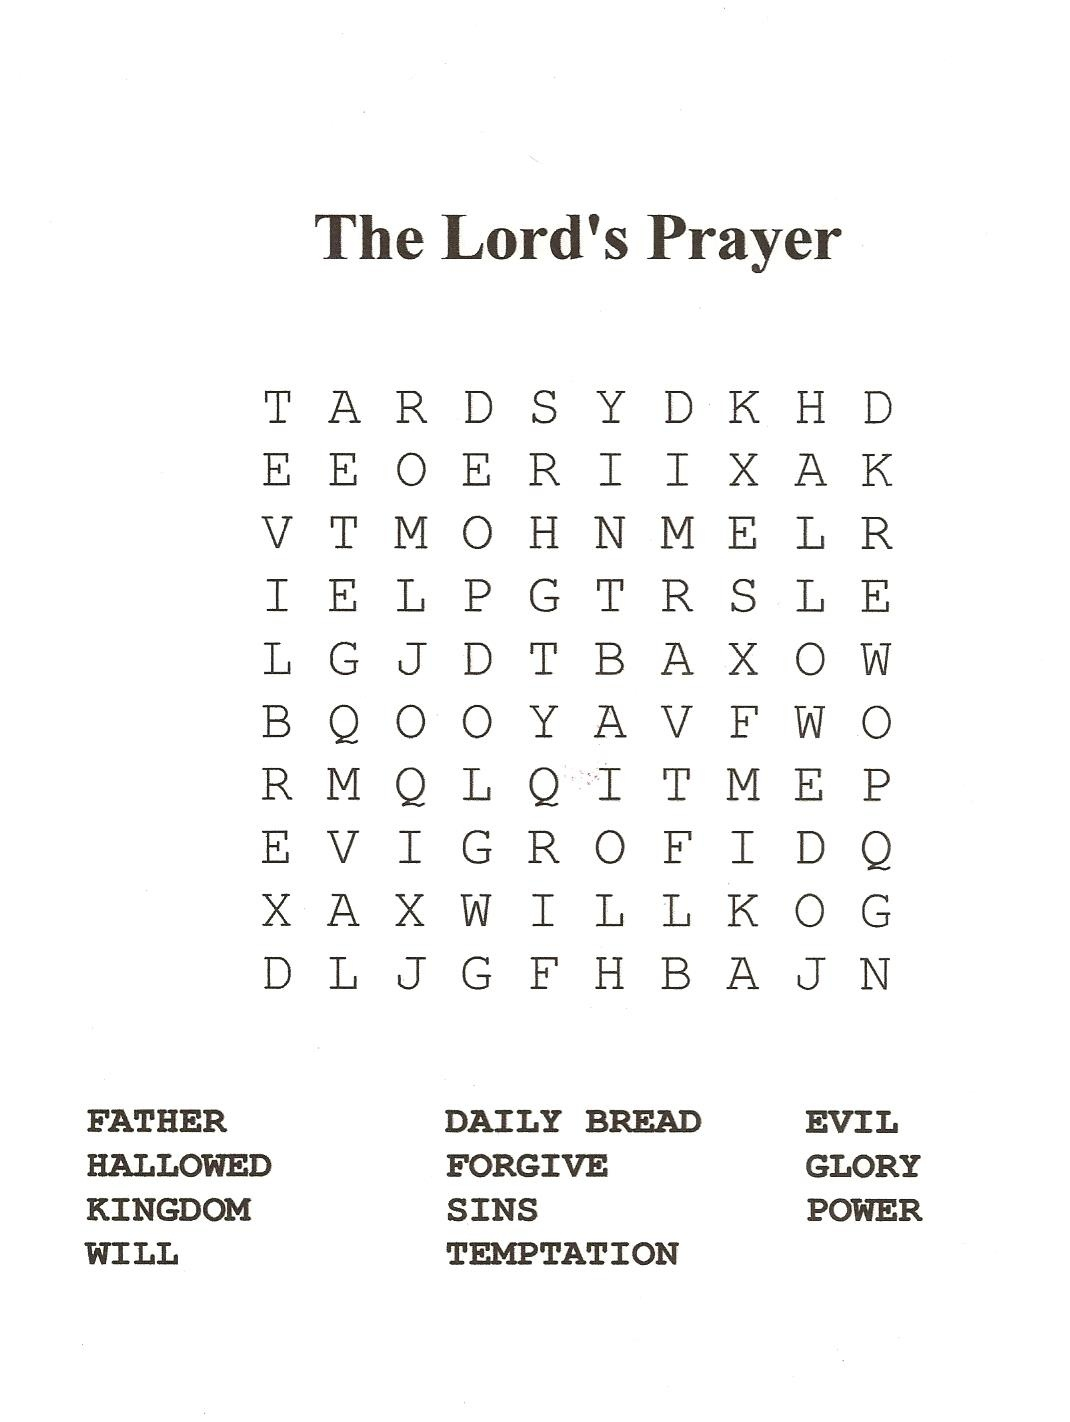 18 Fun Printable Bible Word Search Puzzles   Kittybabylove - Free Printable Catholic Word Search